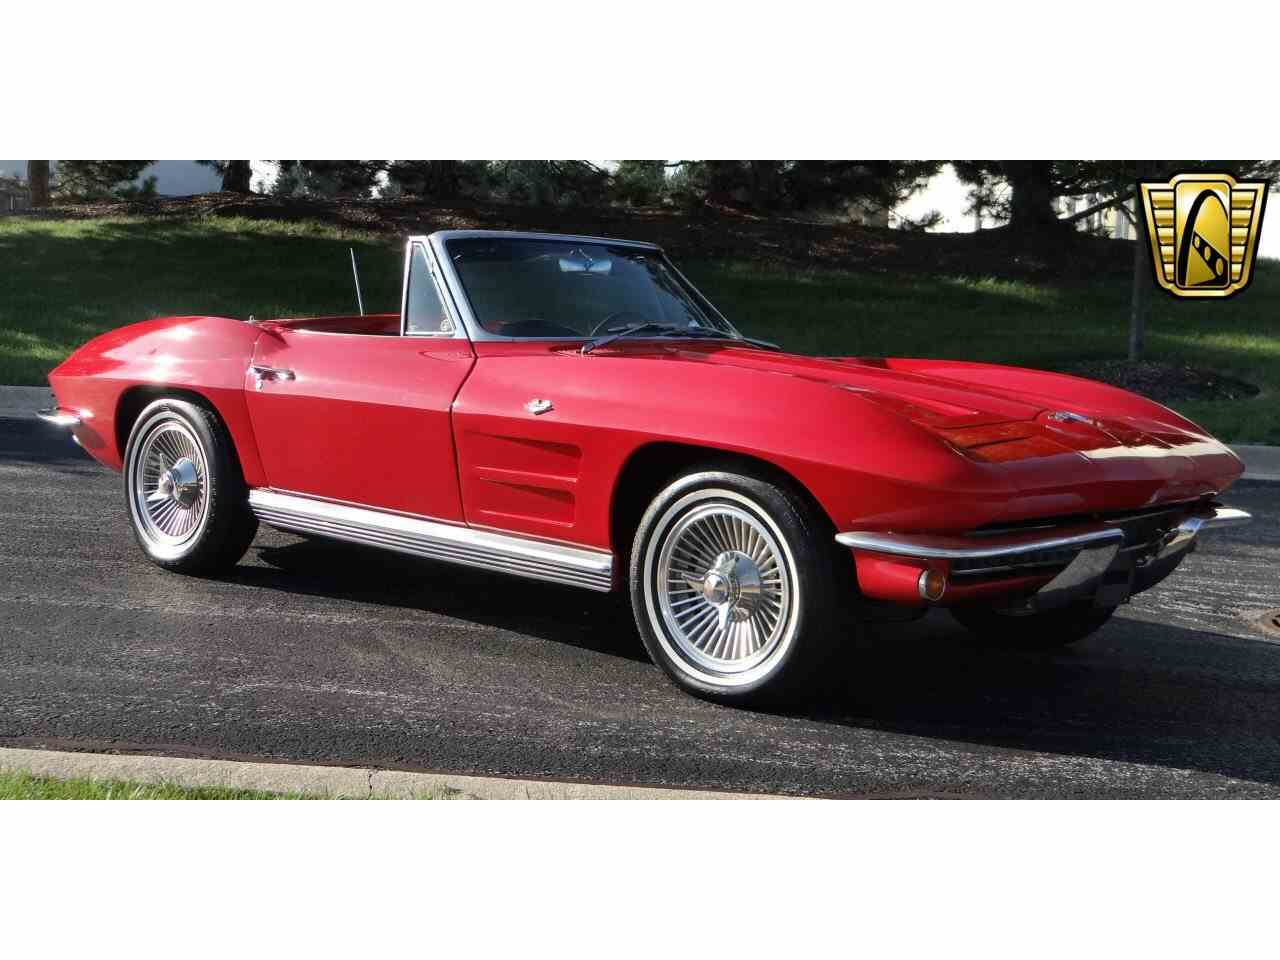 Large Picture of Classic 1964 Corvette located in Illinois Offered by Gateway Classic Cars - Chicago - KEXN